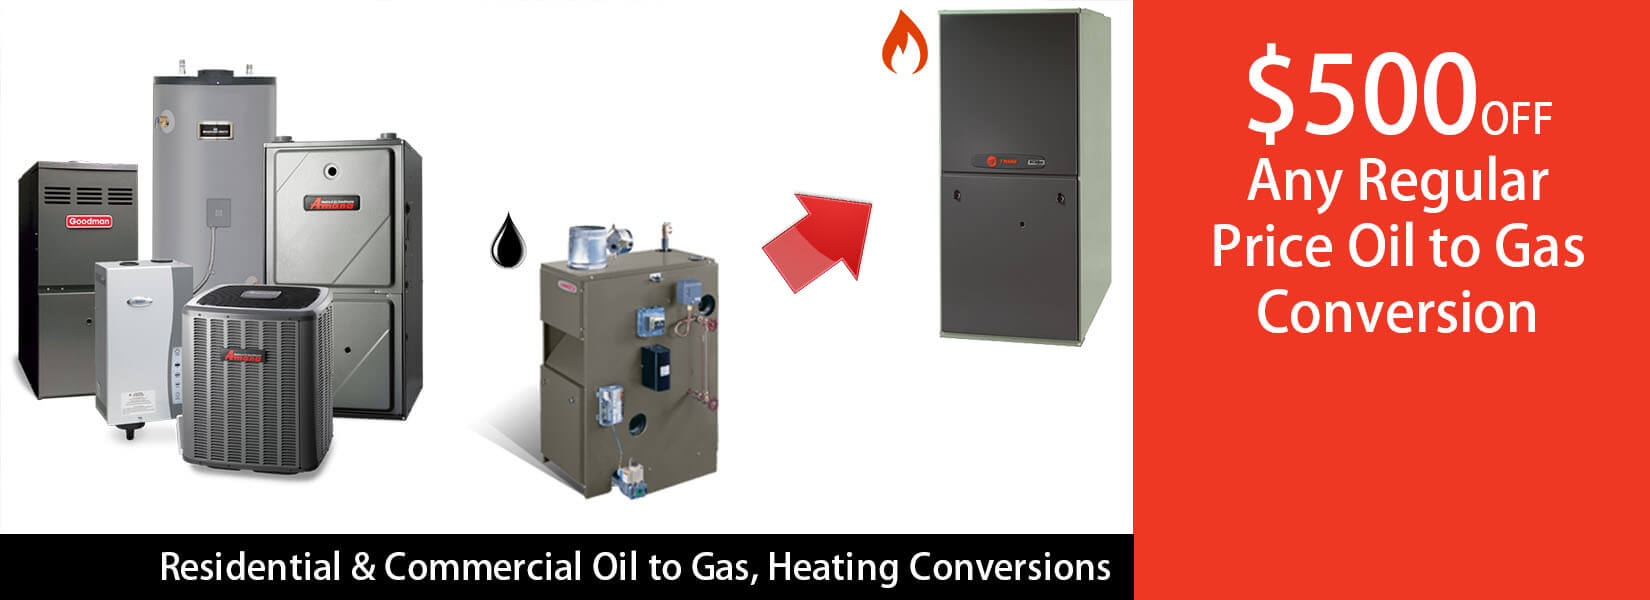 oil-to-gas-conversion2